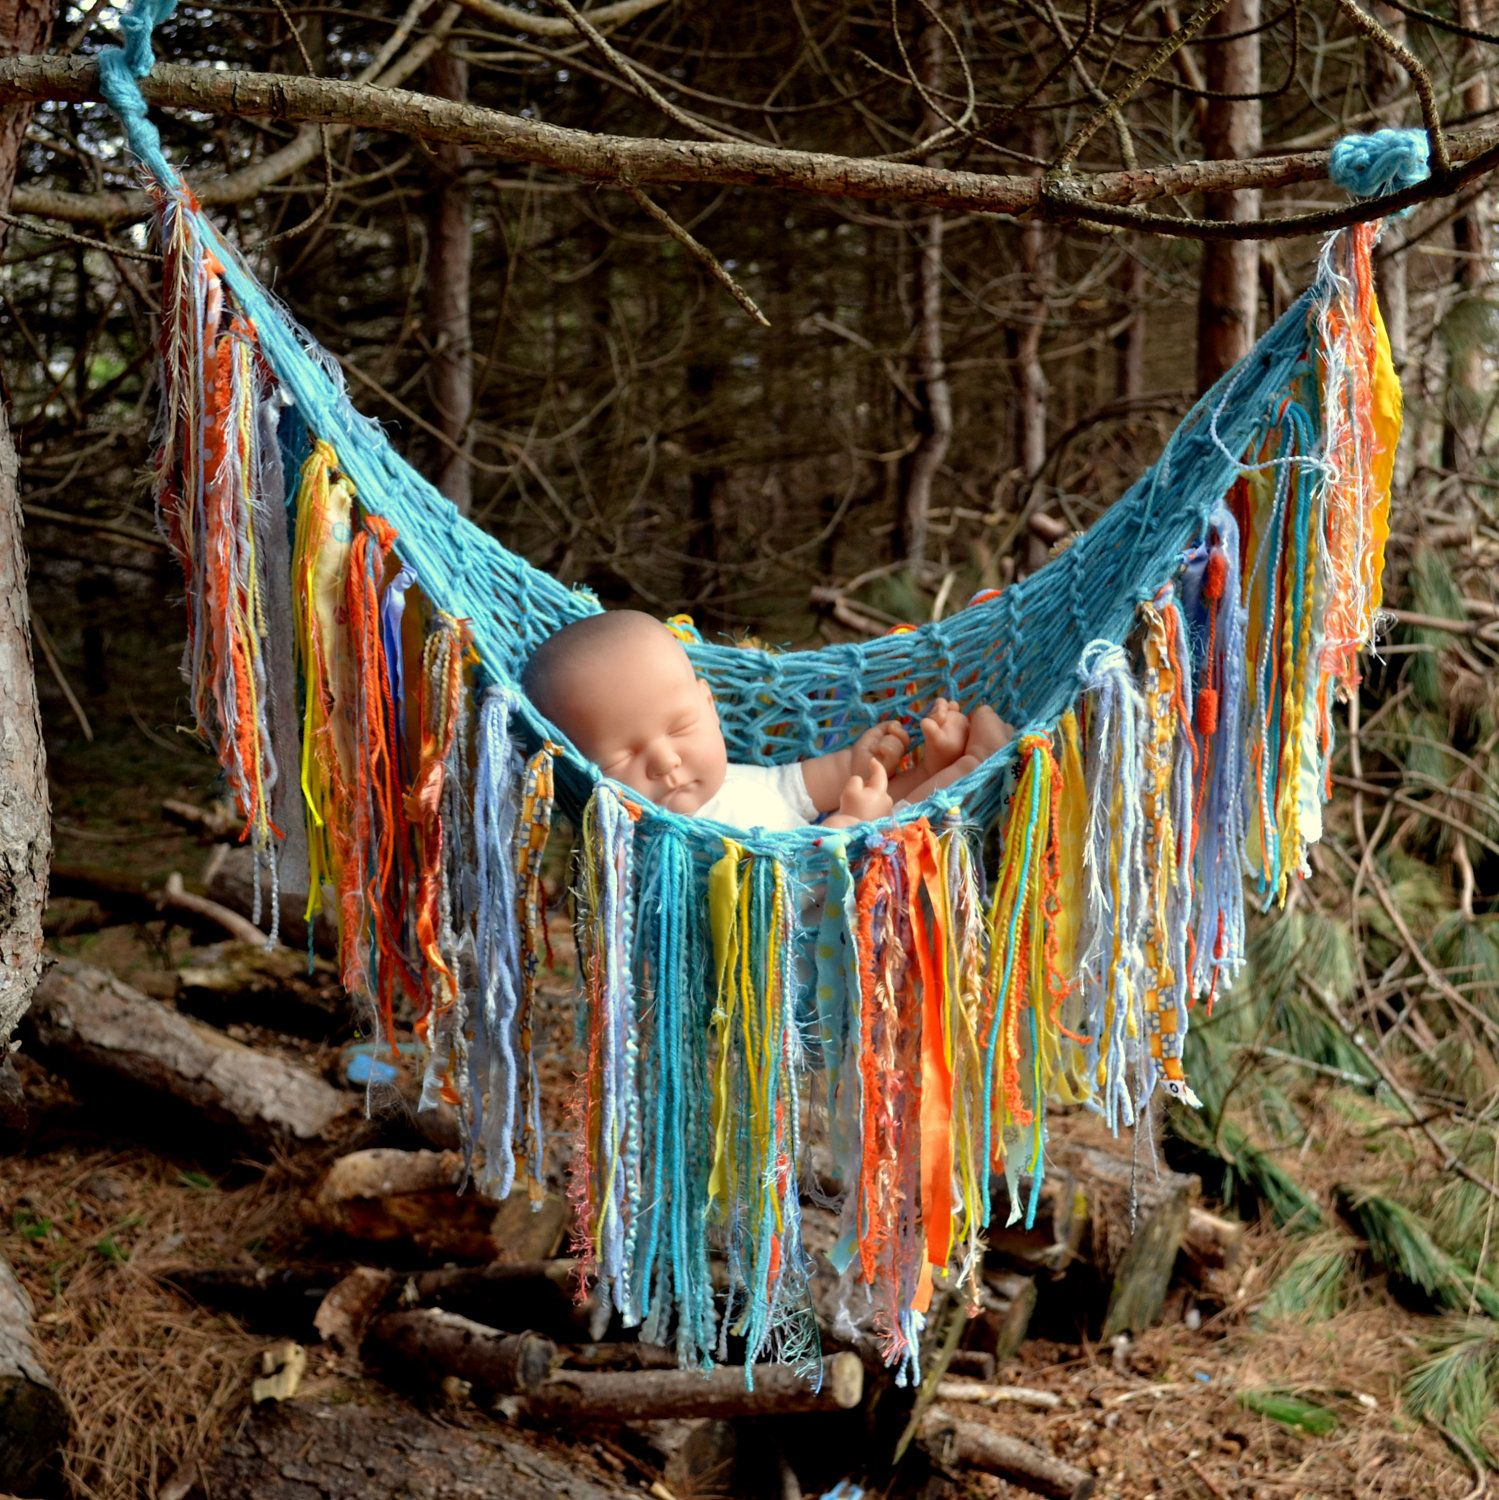 quilt bushcraft outdoor detail hammock blanket